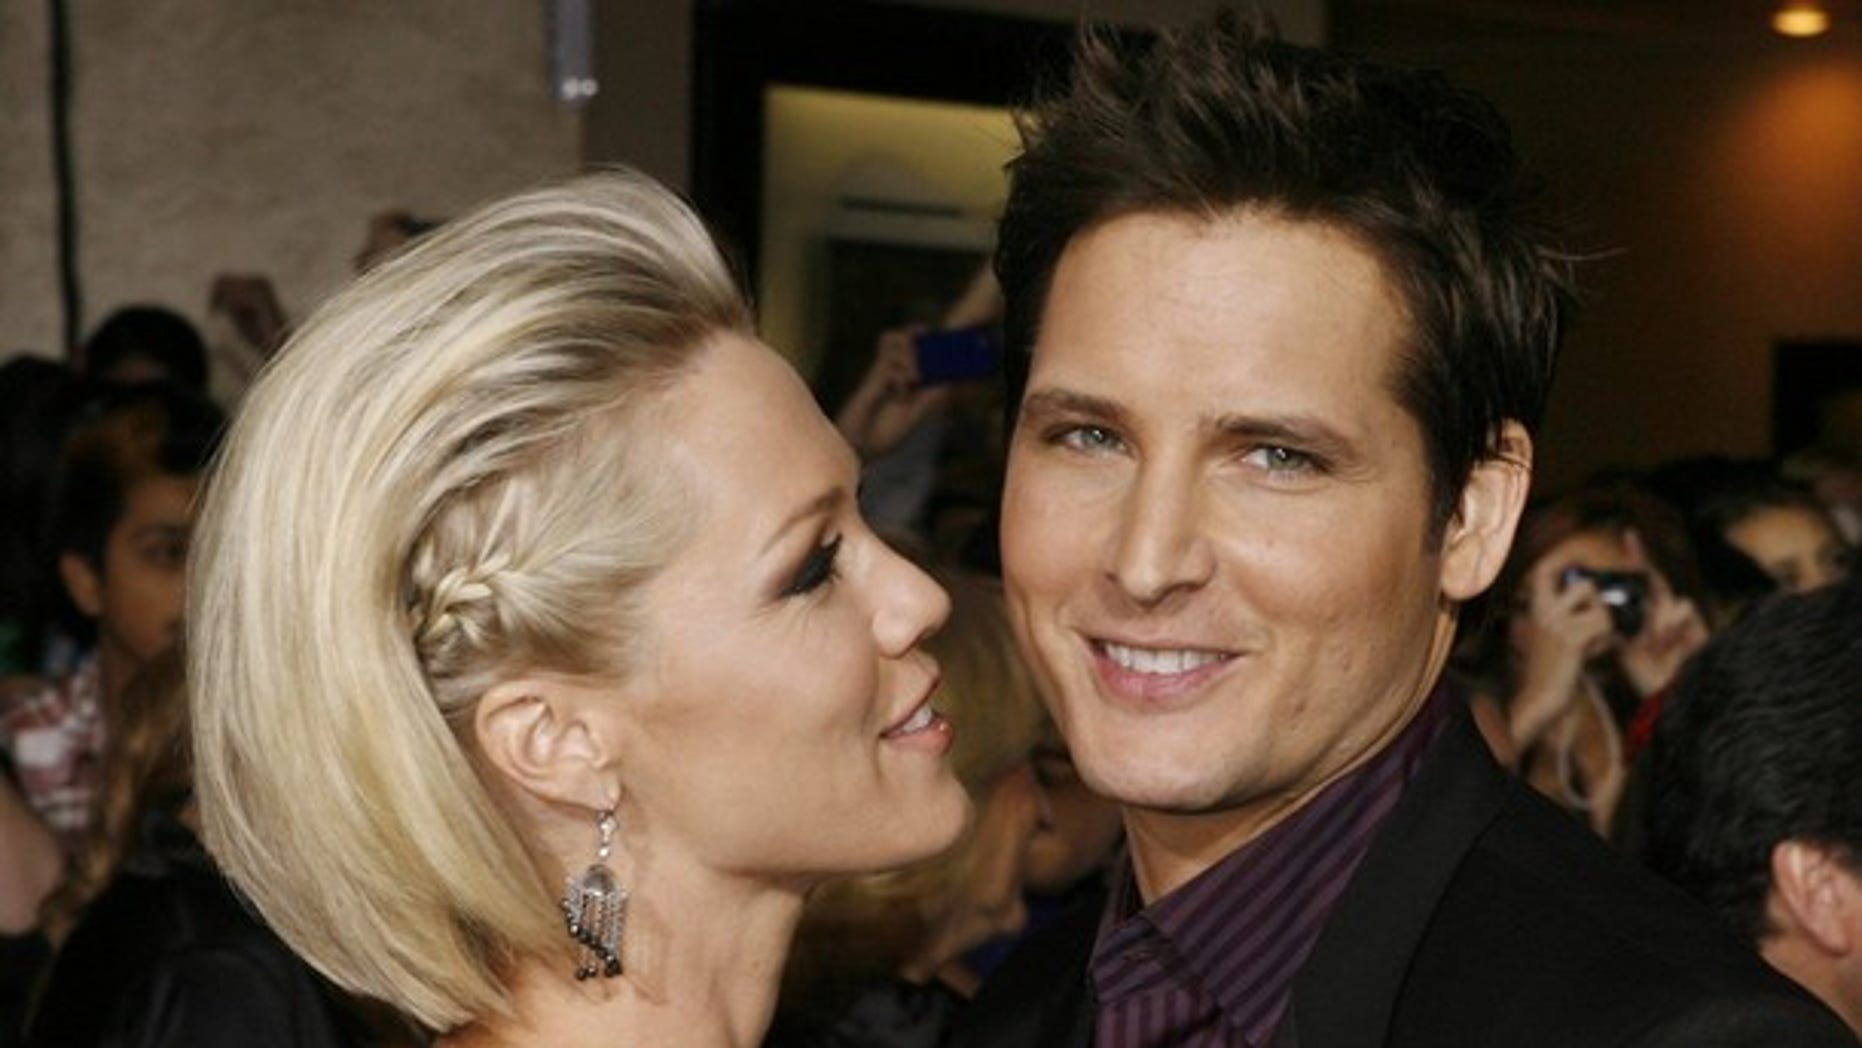 """Actor Peter Facinelli, star of the new film """"The Twilight Saga: New Moon"""" poses with his wife, actress Jennie Garth, at the film's Los Angeles premiere  November 16, 2009. REUTERS/Fred Prouser    (UNITED STATES ENTERTAINMENT)"""